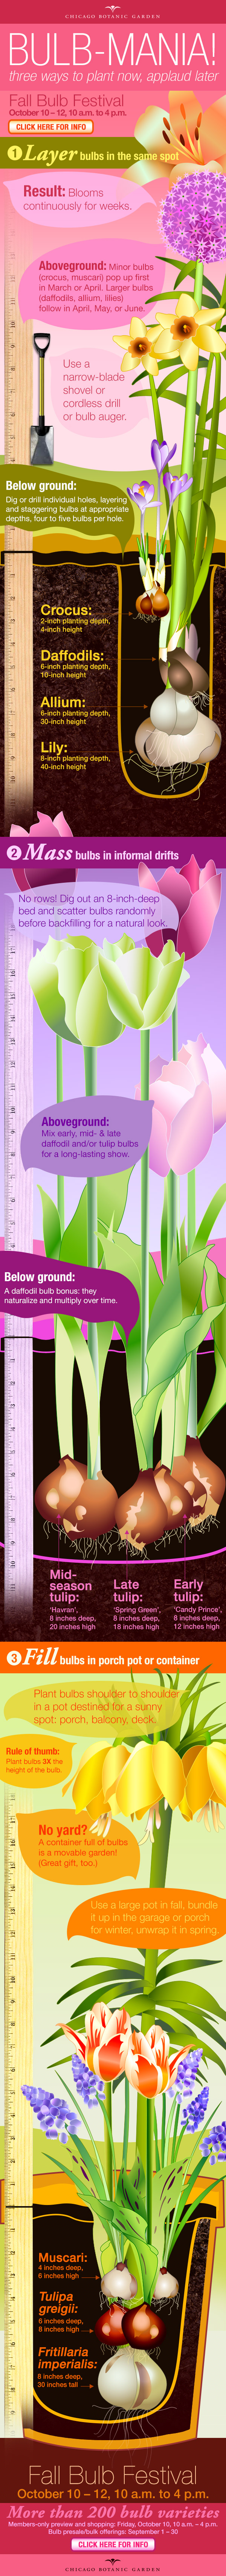 ILLUSTRATION: Bulb planting infographic.